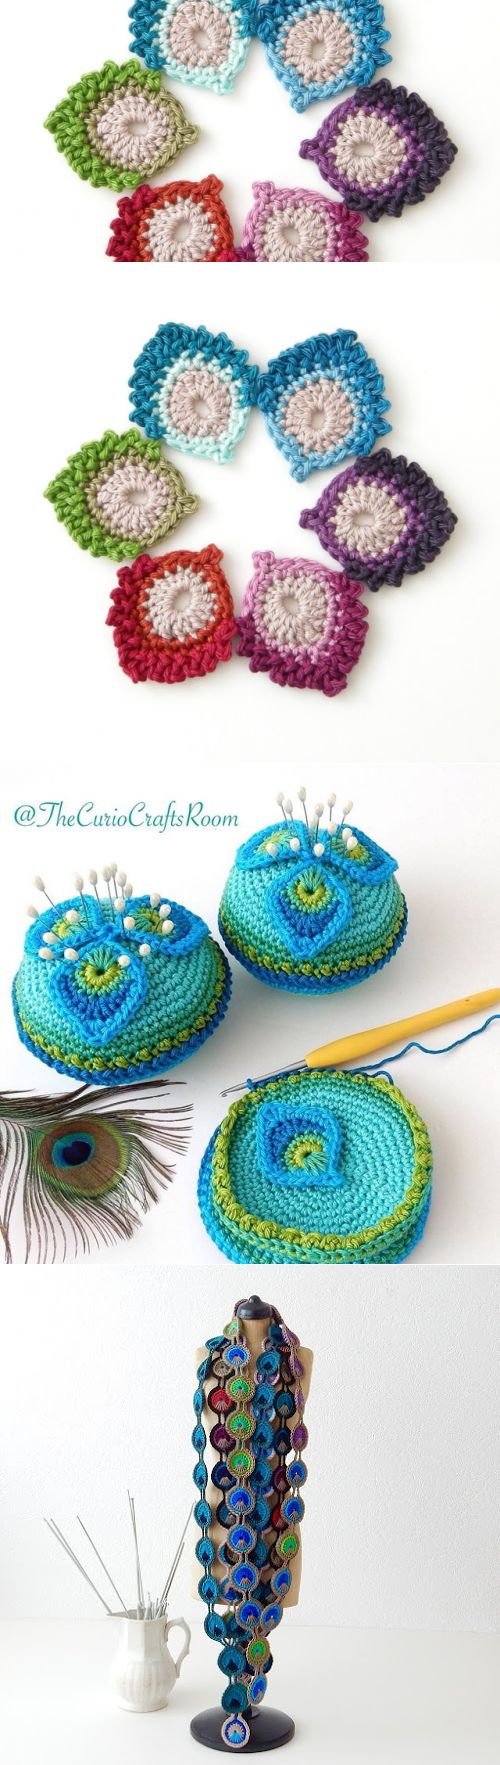 Free knitting pattern in English and Dutch languages: French mini-Peacock Feather | TheCurioCraftsRoom